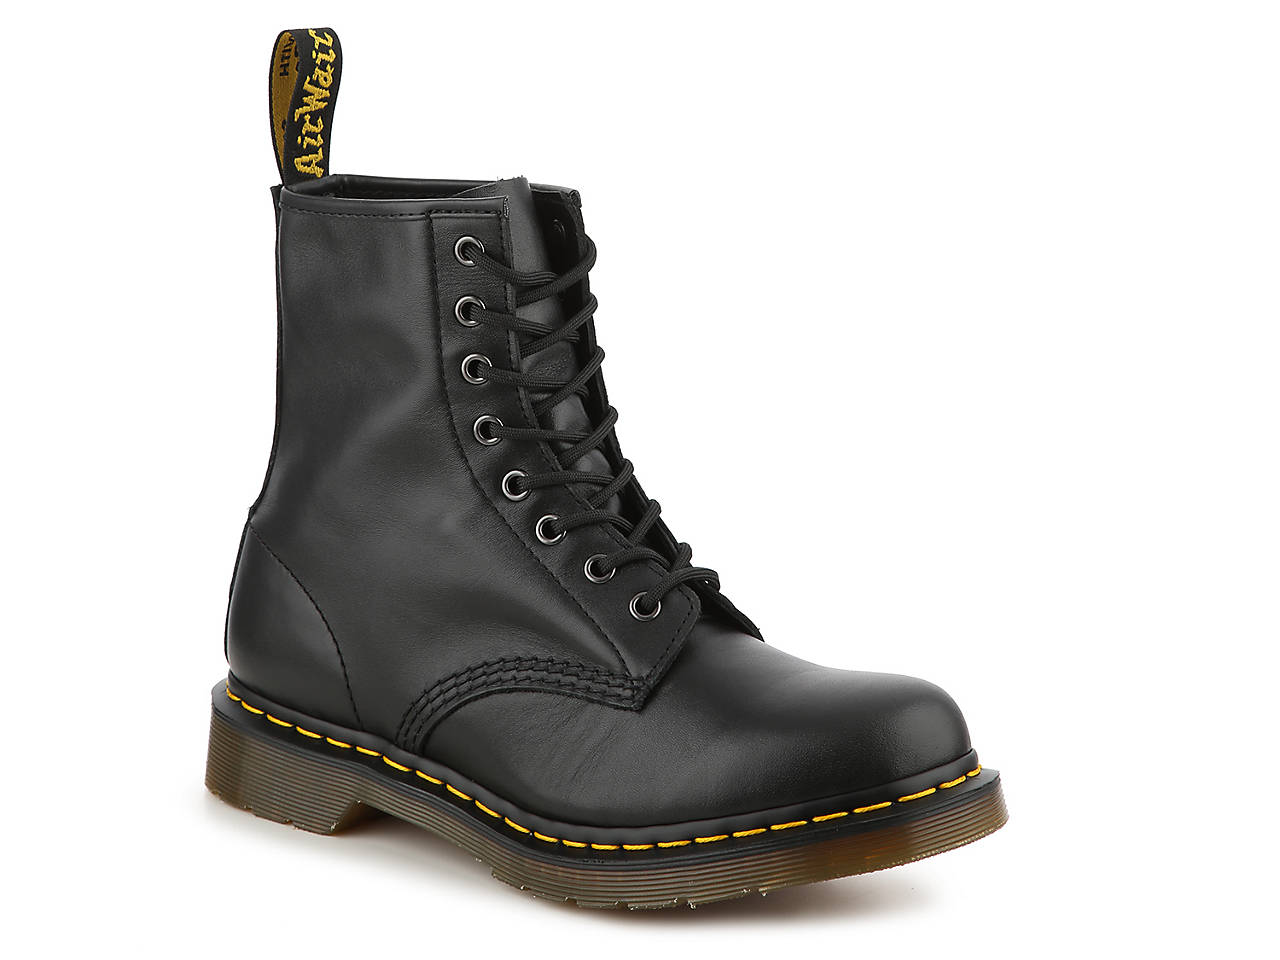 8154b24b207 Dr. Martens 1460 Combat Boot Women's Shoes | DSW